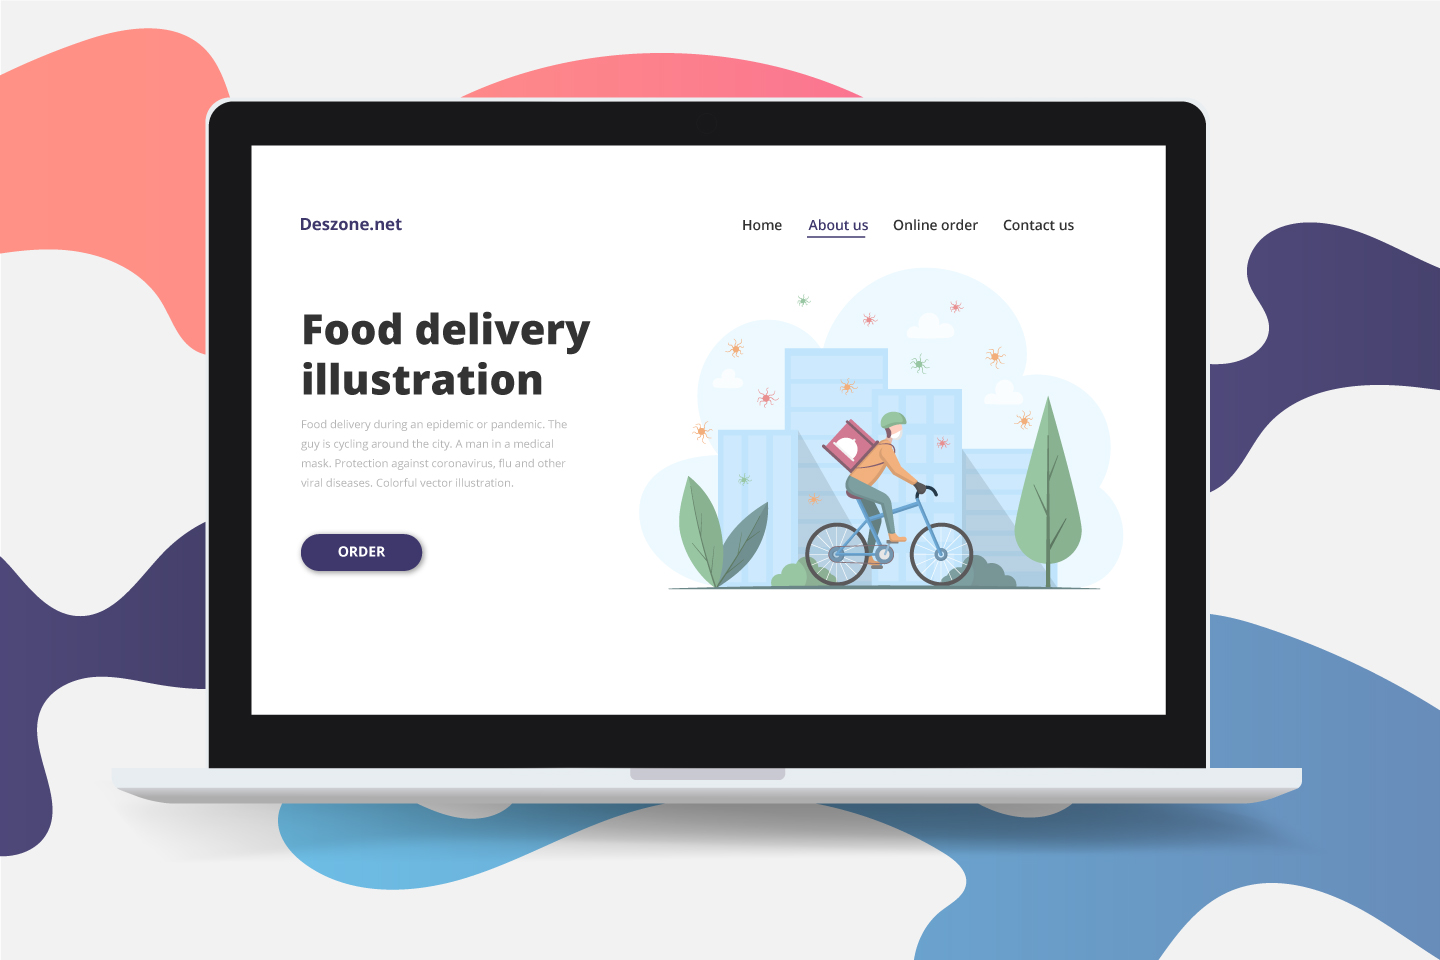 Food Delivery During an Epidemic or Pandemic Illustration